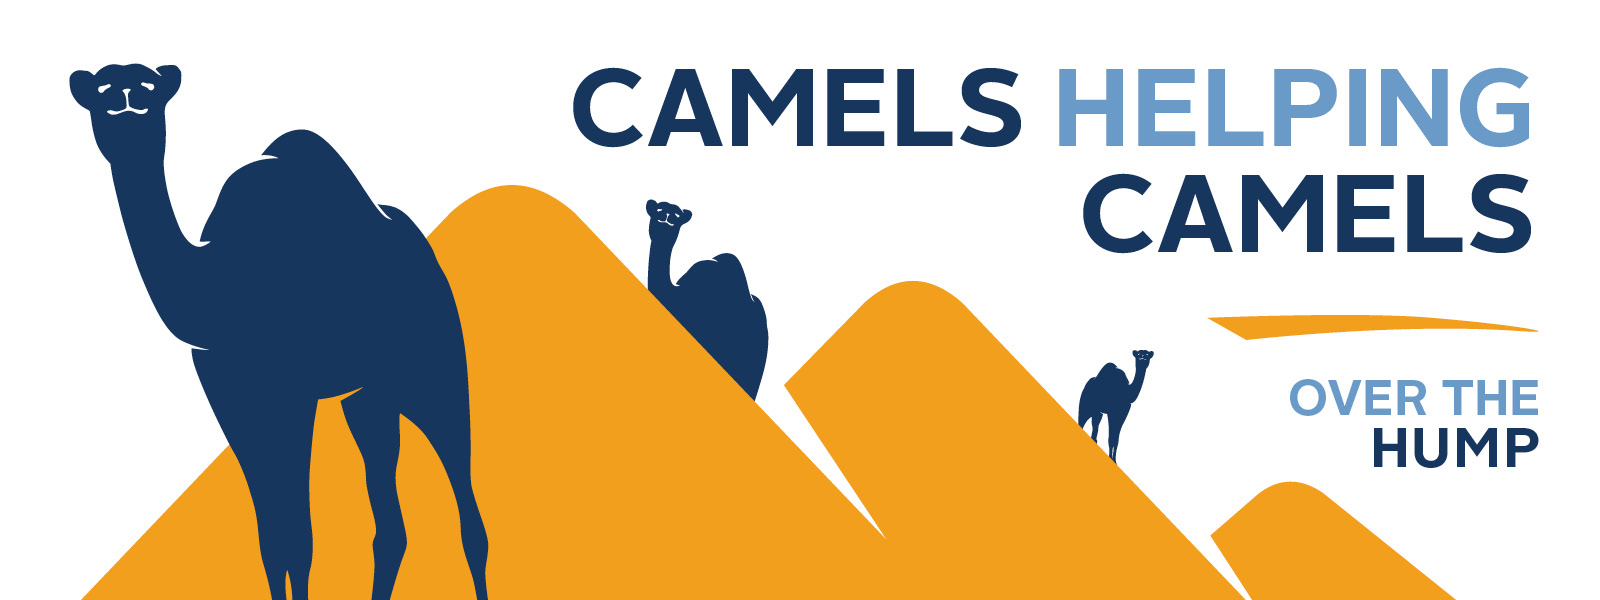 Camels Helping Camels Graphic